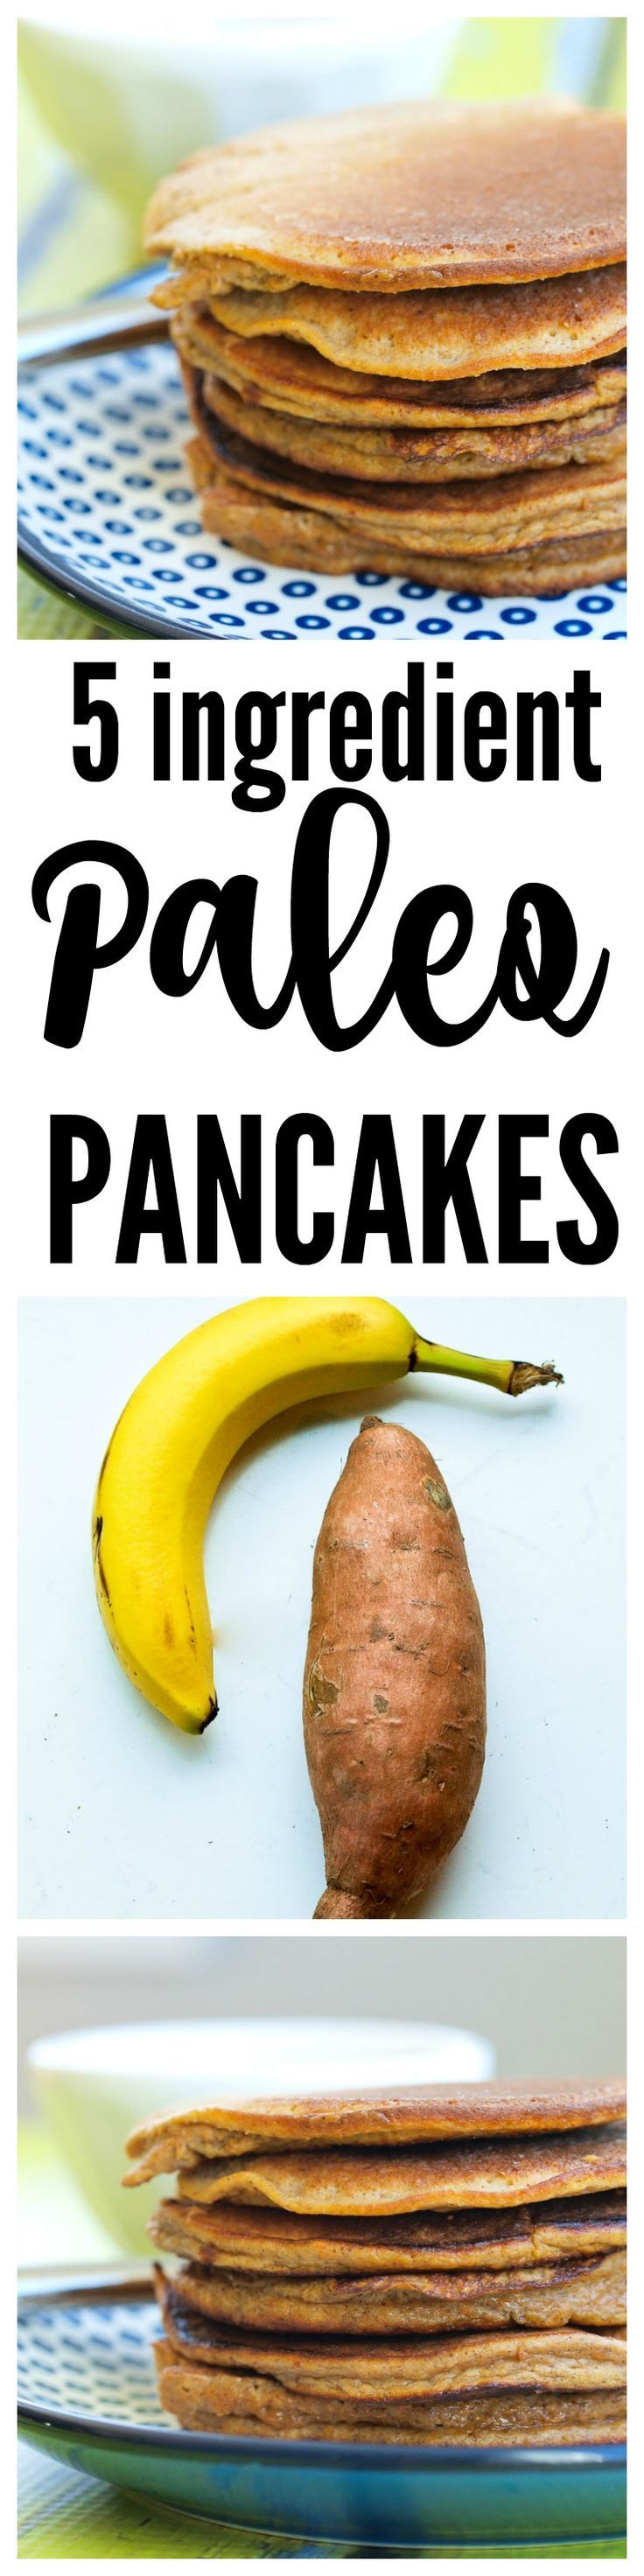 Paleo pancakes sweet potato and banana pancakes made with no flour and no sugar! A great healthy gluten-free breakfast idea.